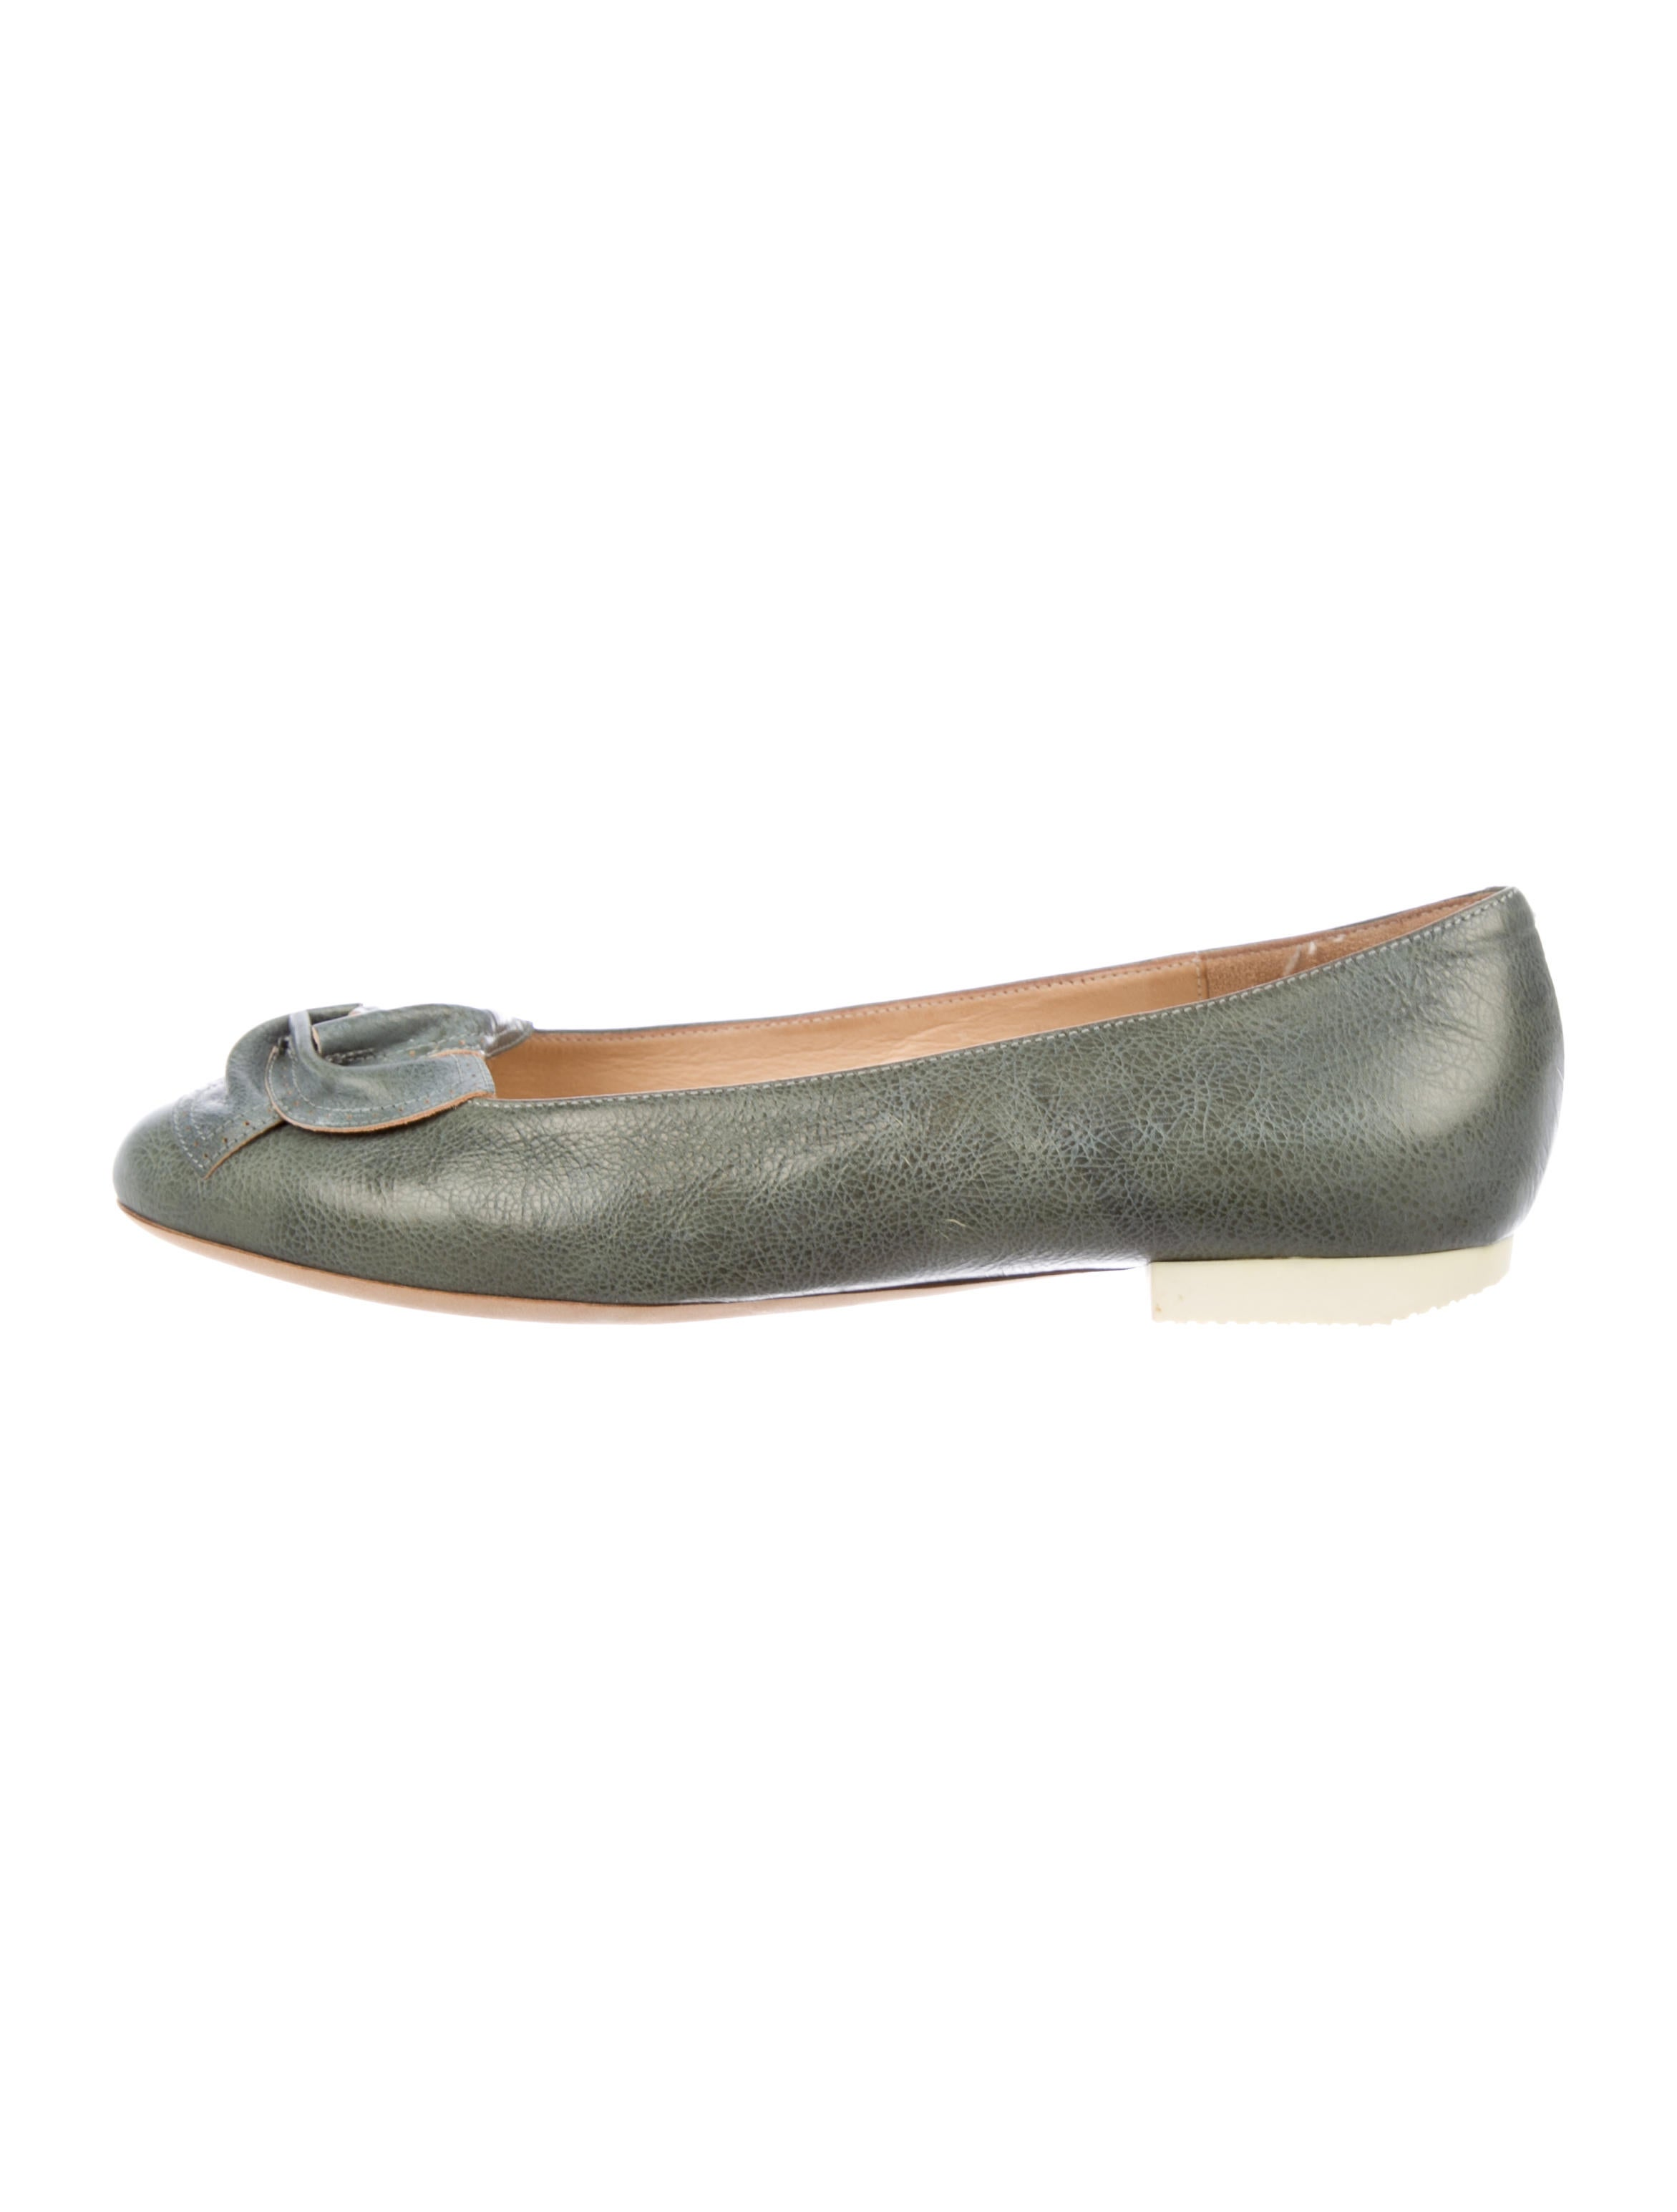 Dries Van Noten Leather Ruched Flats geniue stockist for sale cheap sale high quality RMggCrT